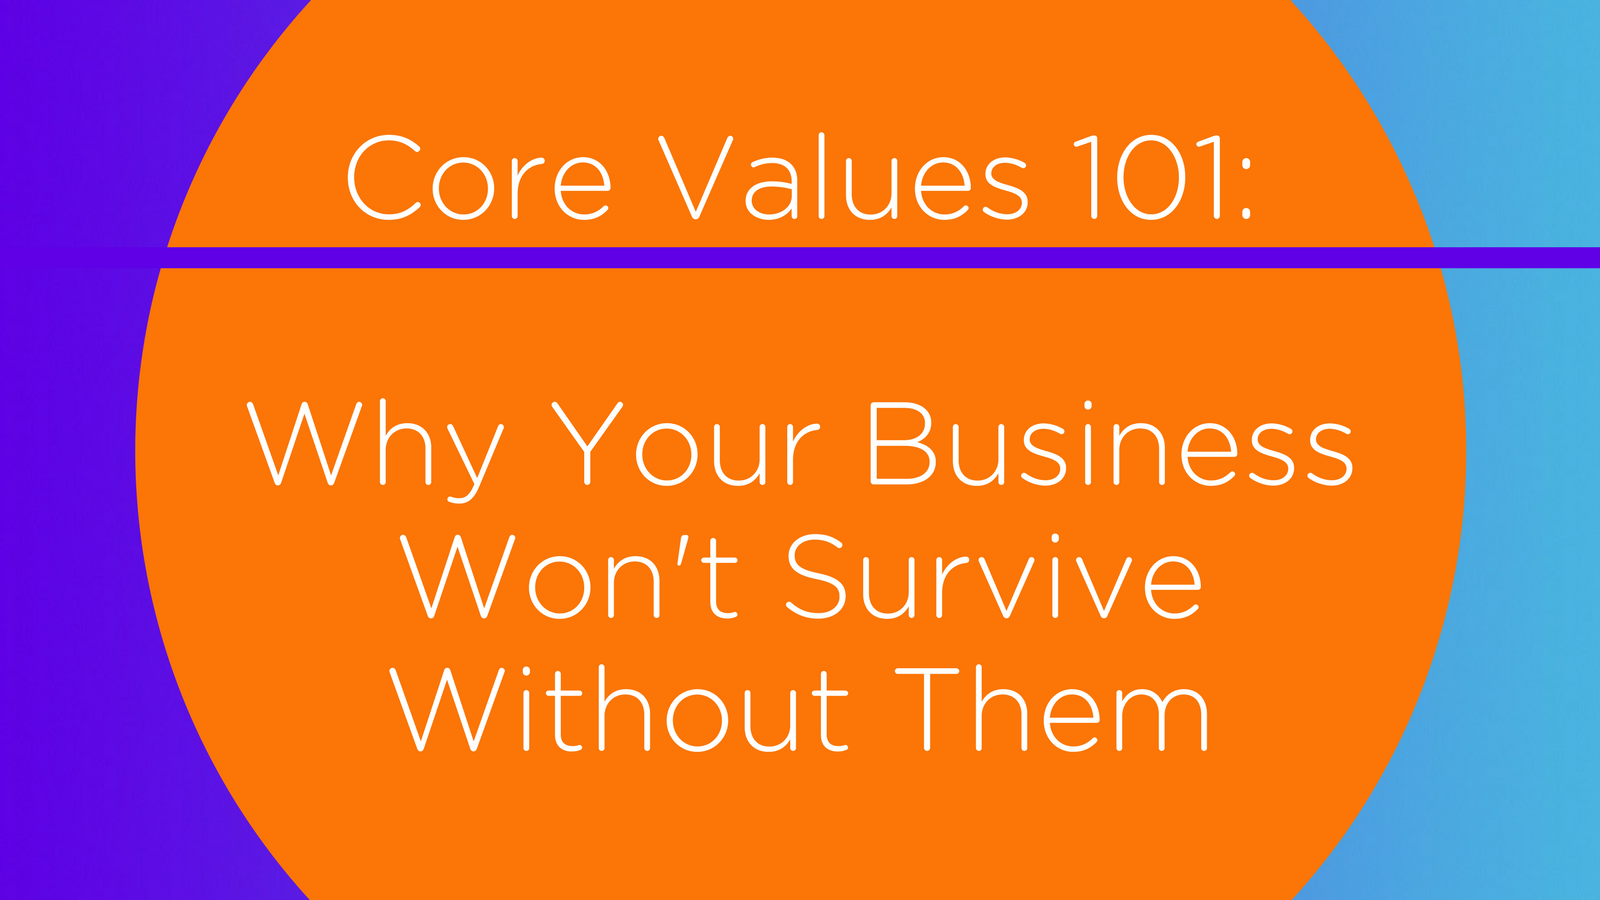 Core Values 101_ Why Your Business Won't Survive Without Them